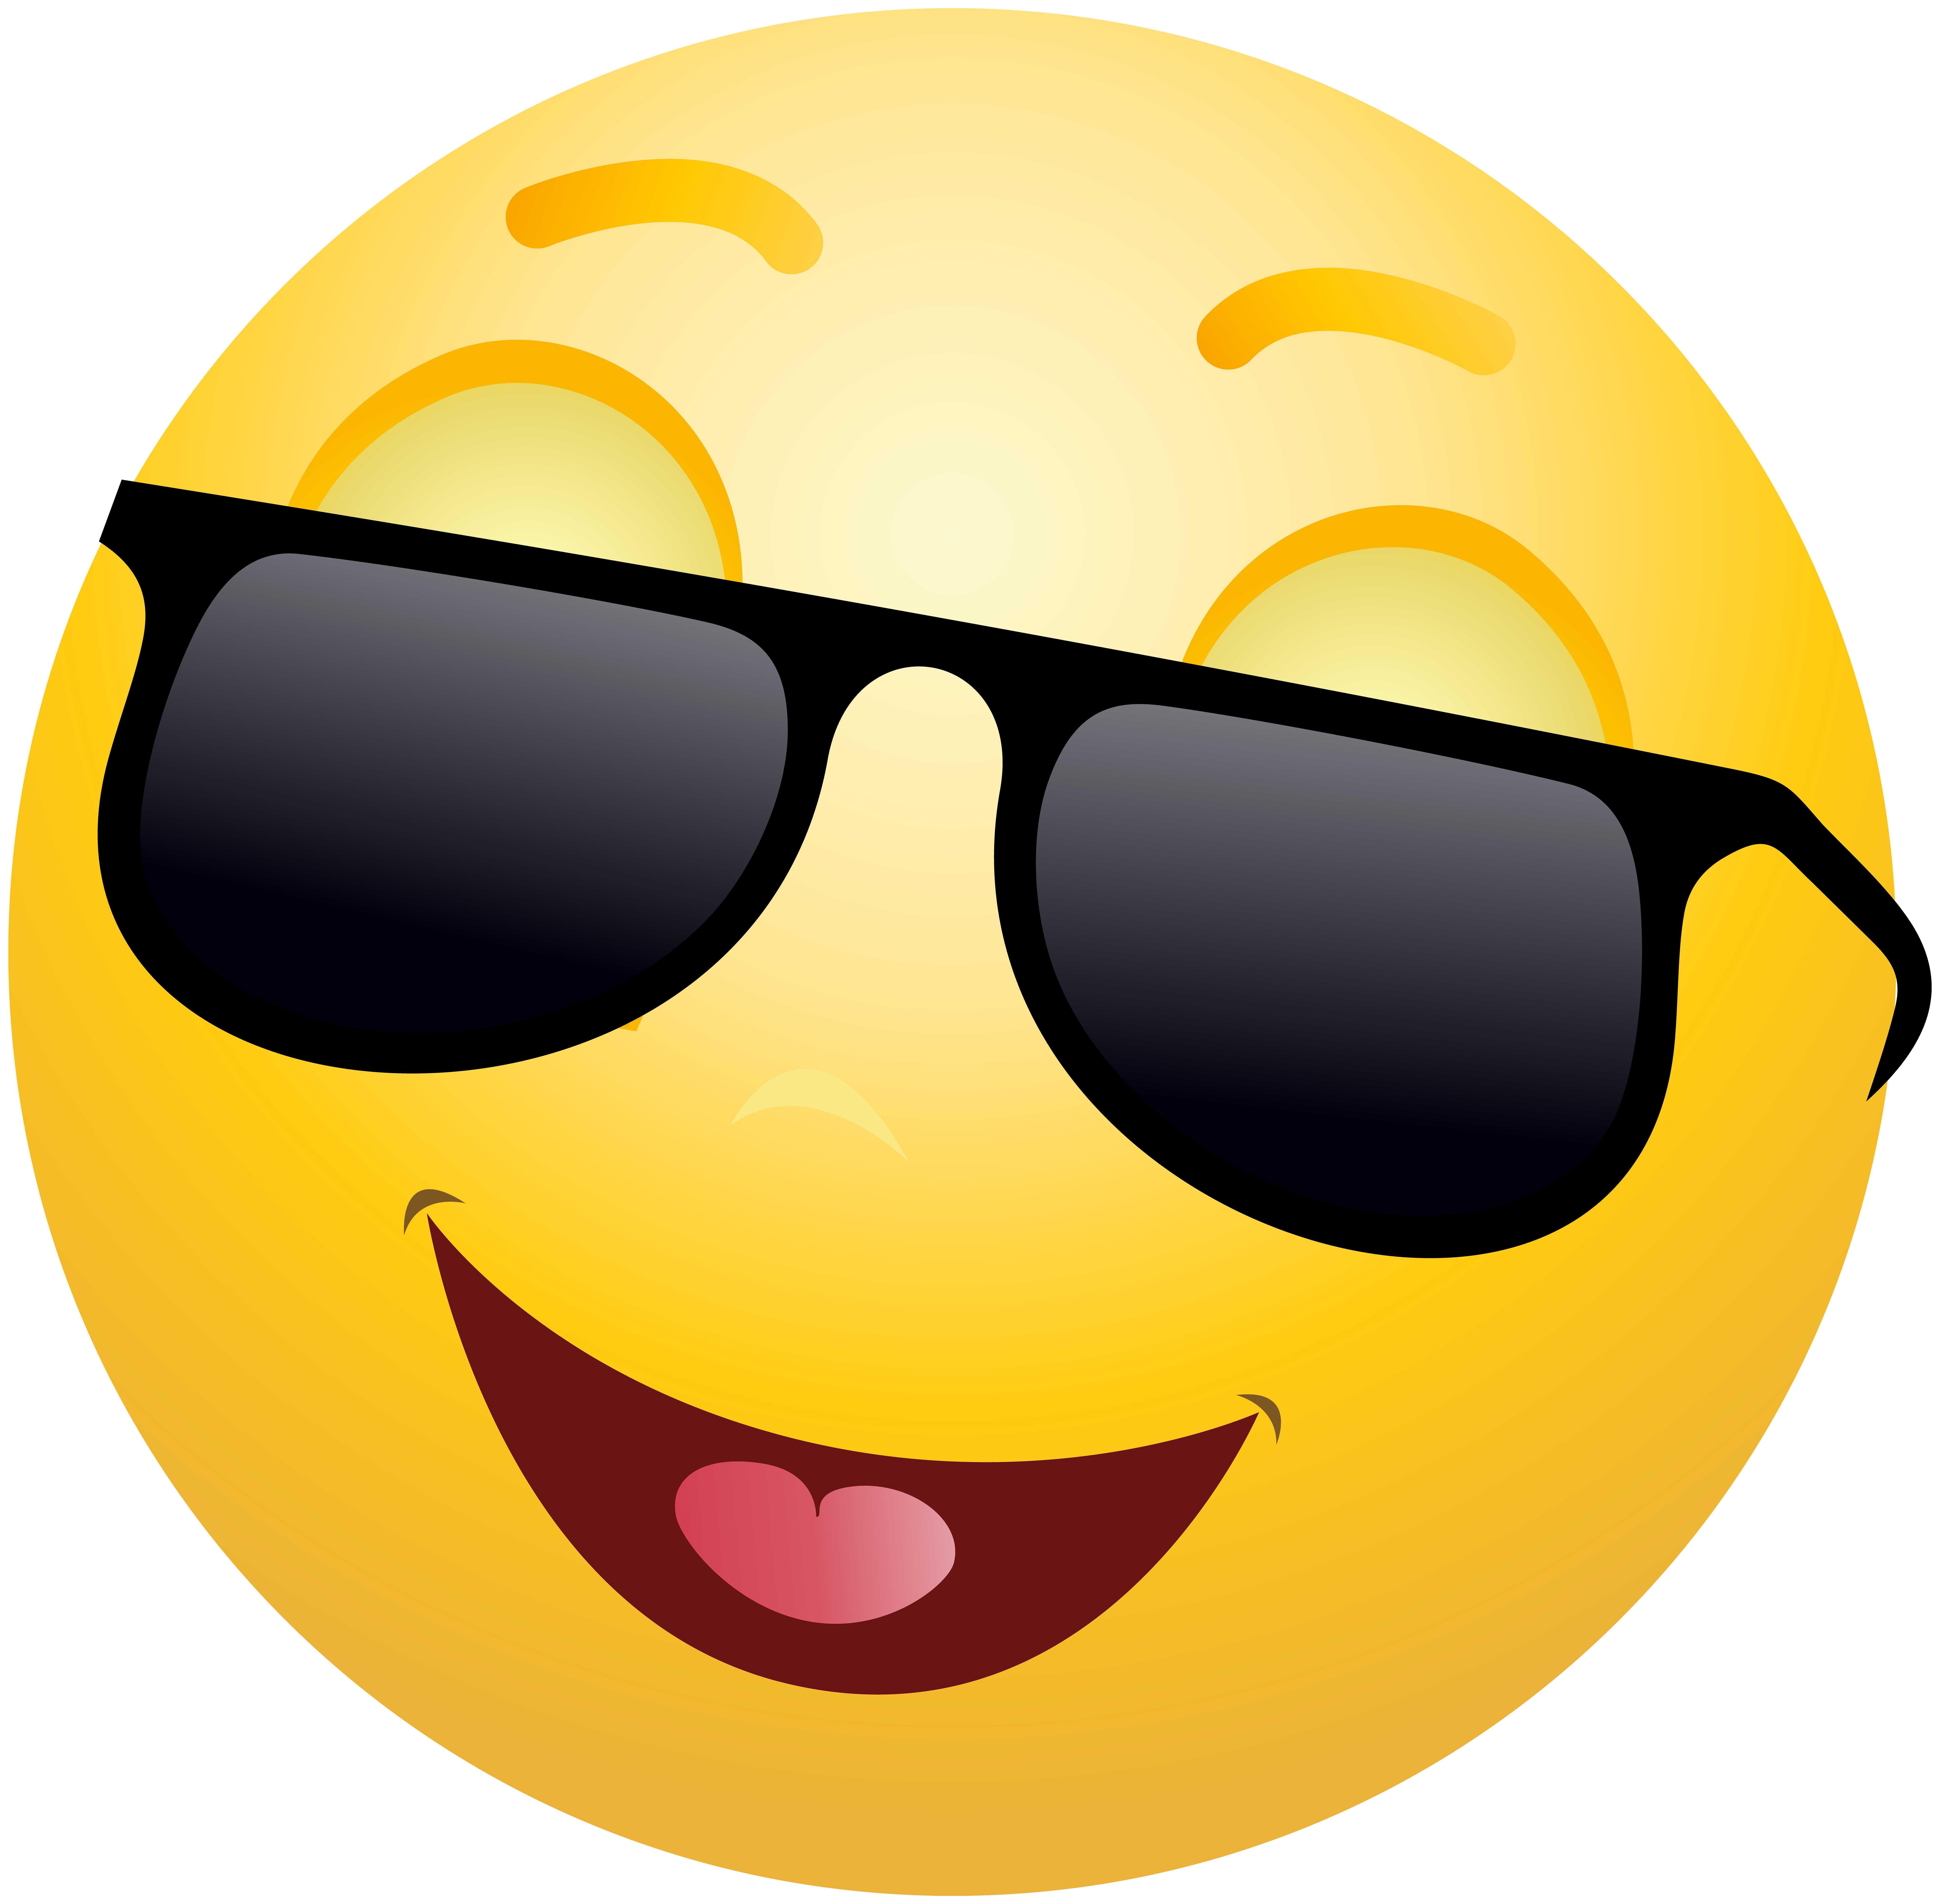 Book with glasses clipart picture royalty free download Smiling Emoticon with Sunglasses PNG Clip Art - Best WEB Clipart picture royalty free download